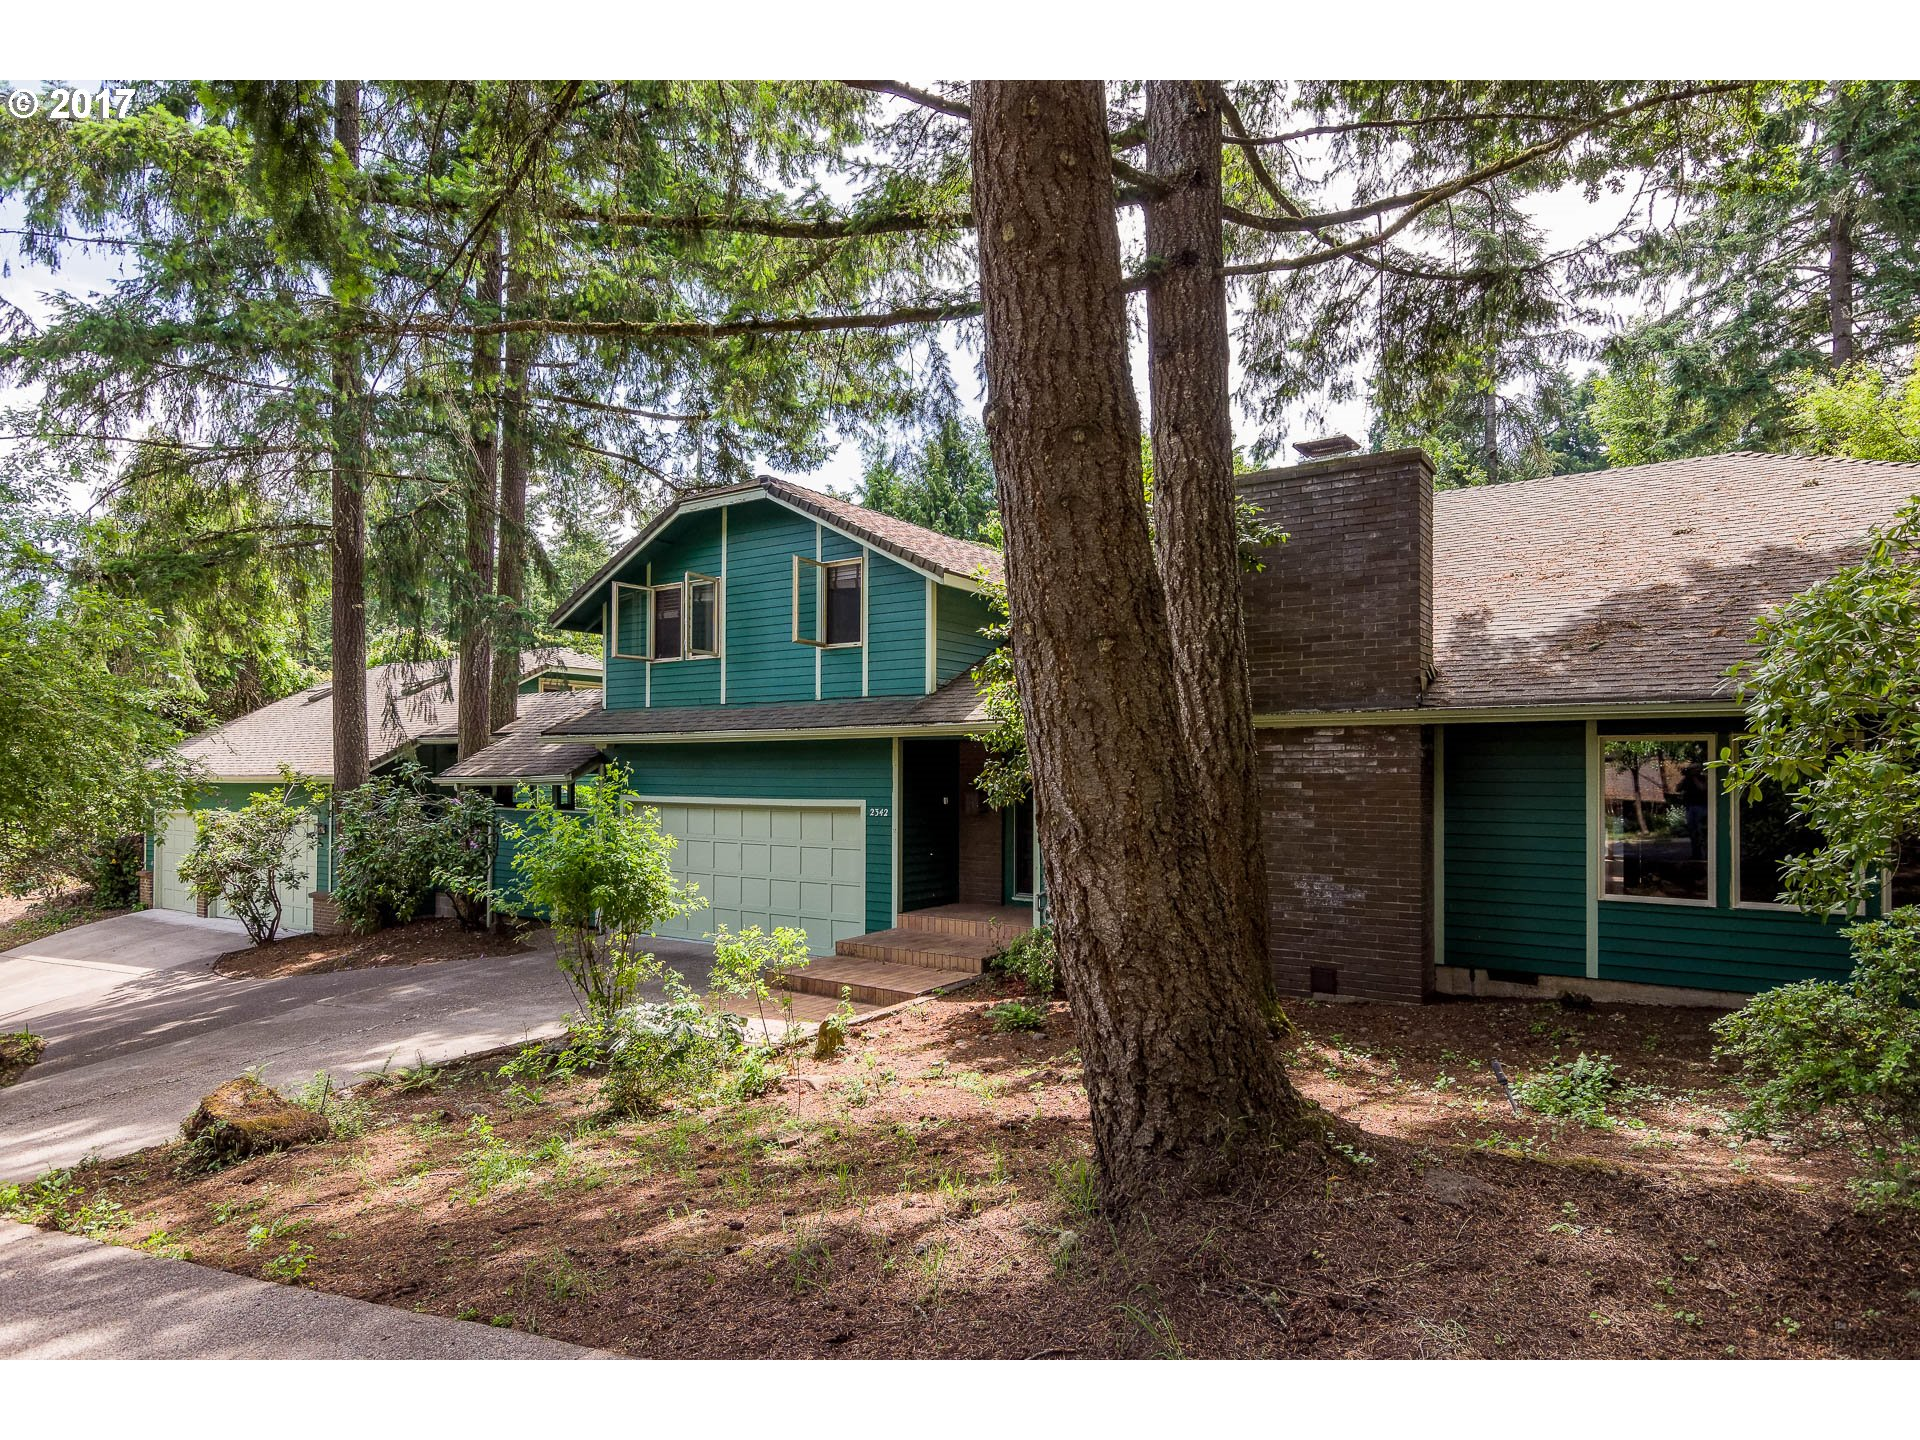 2342 W 29TH AVE, Eugene, OR 97405